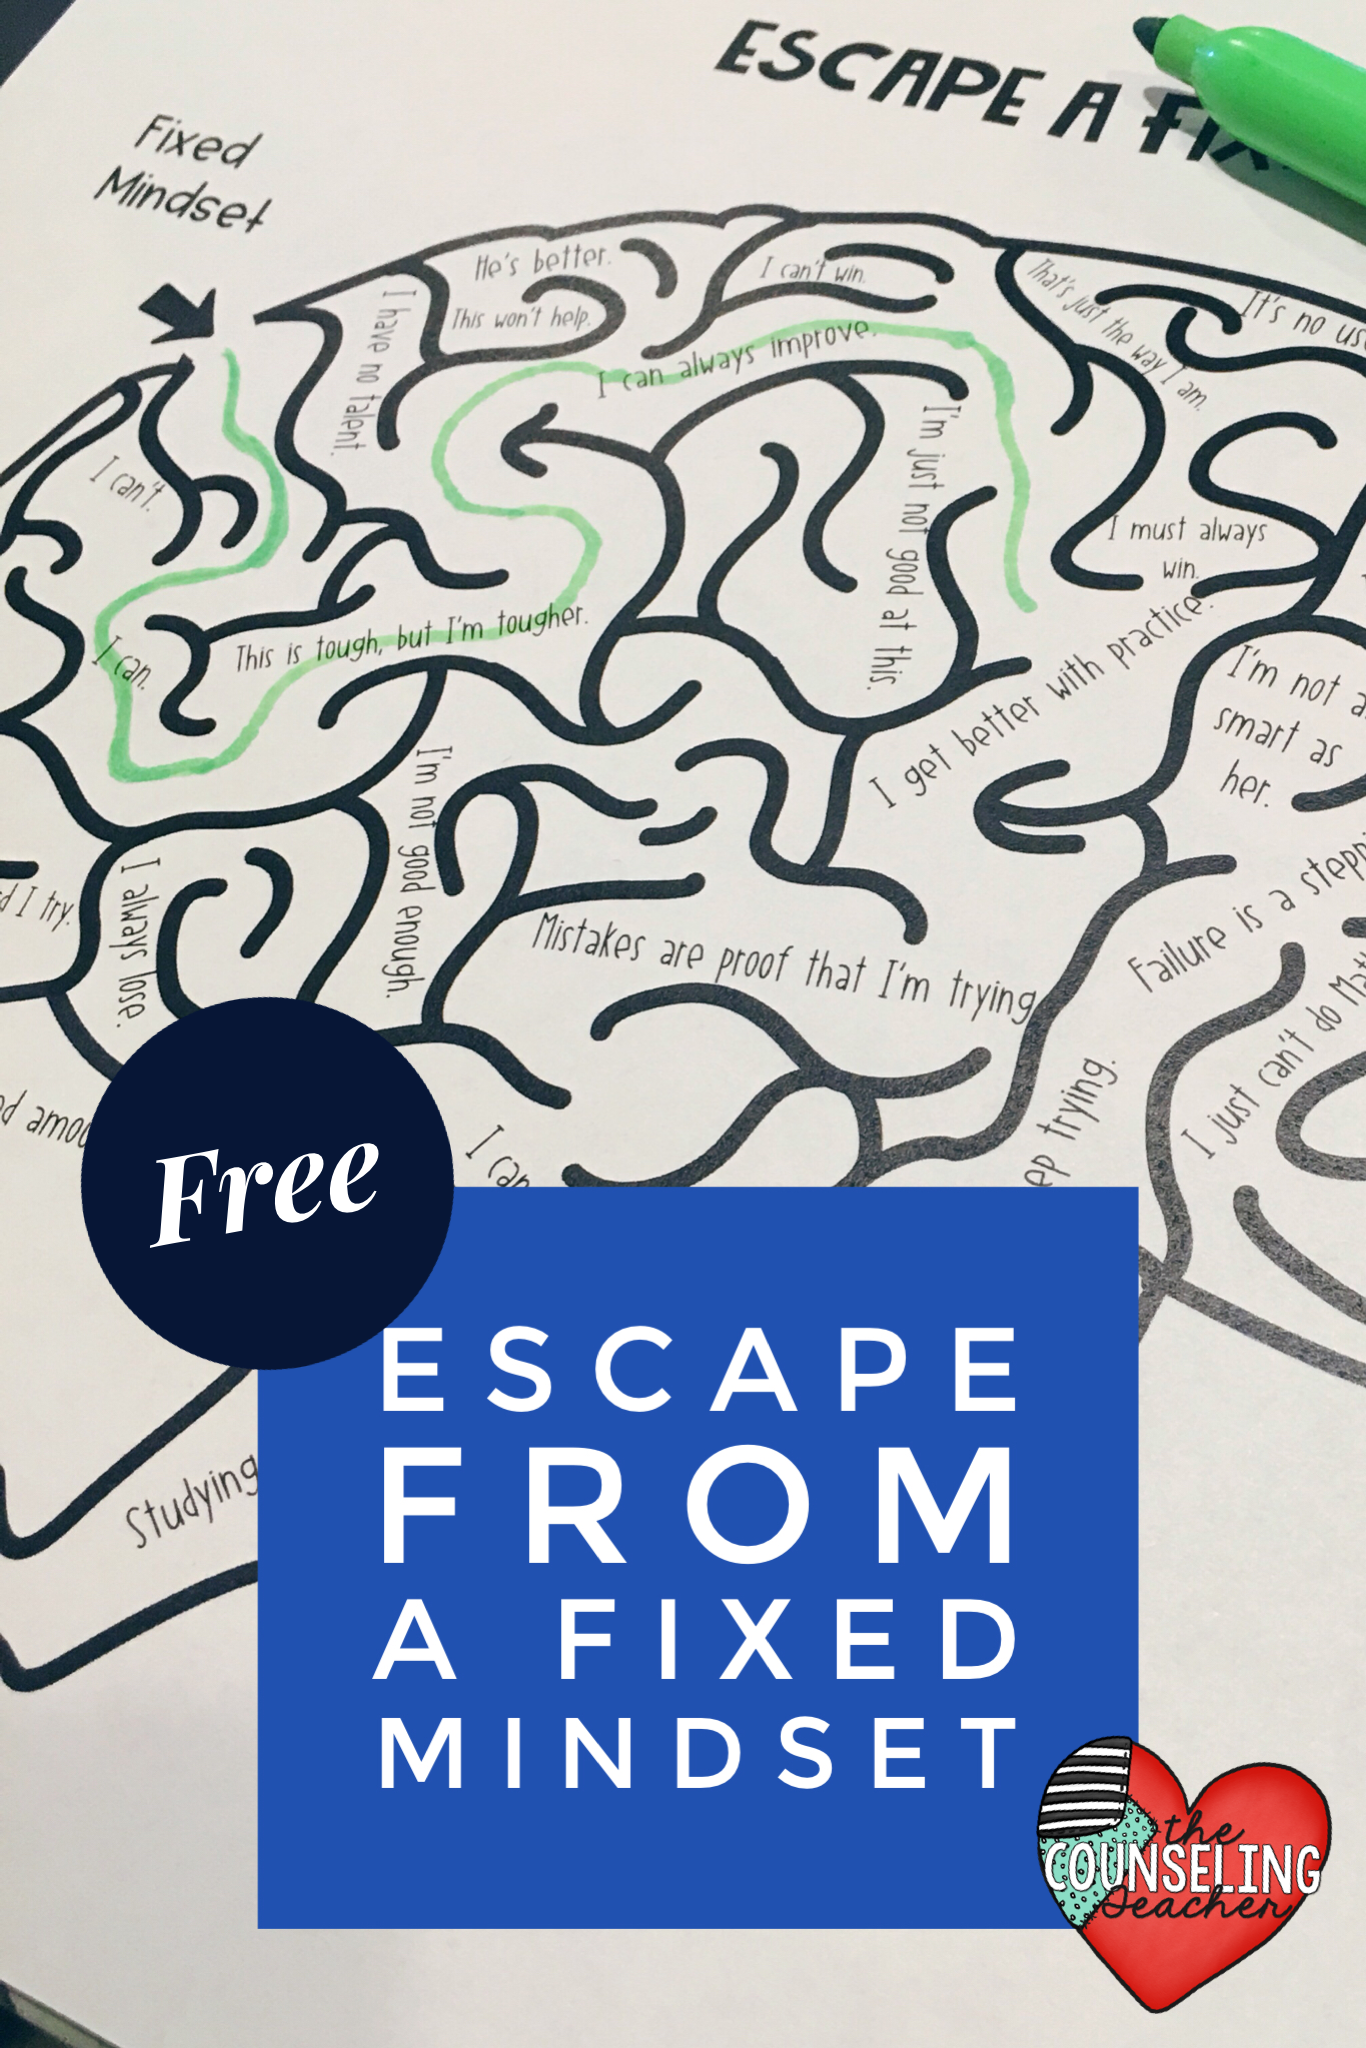 Escape A Fixed Mindset Maze